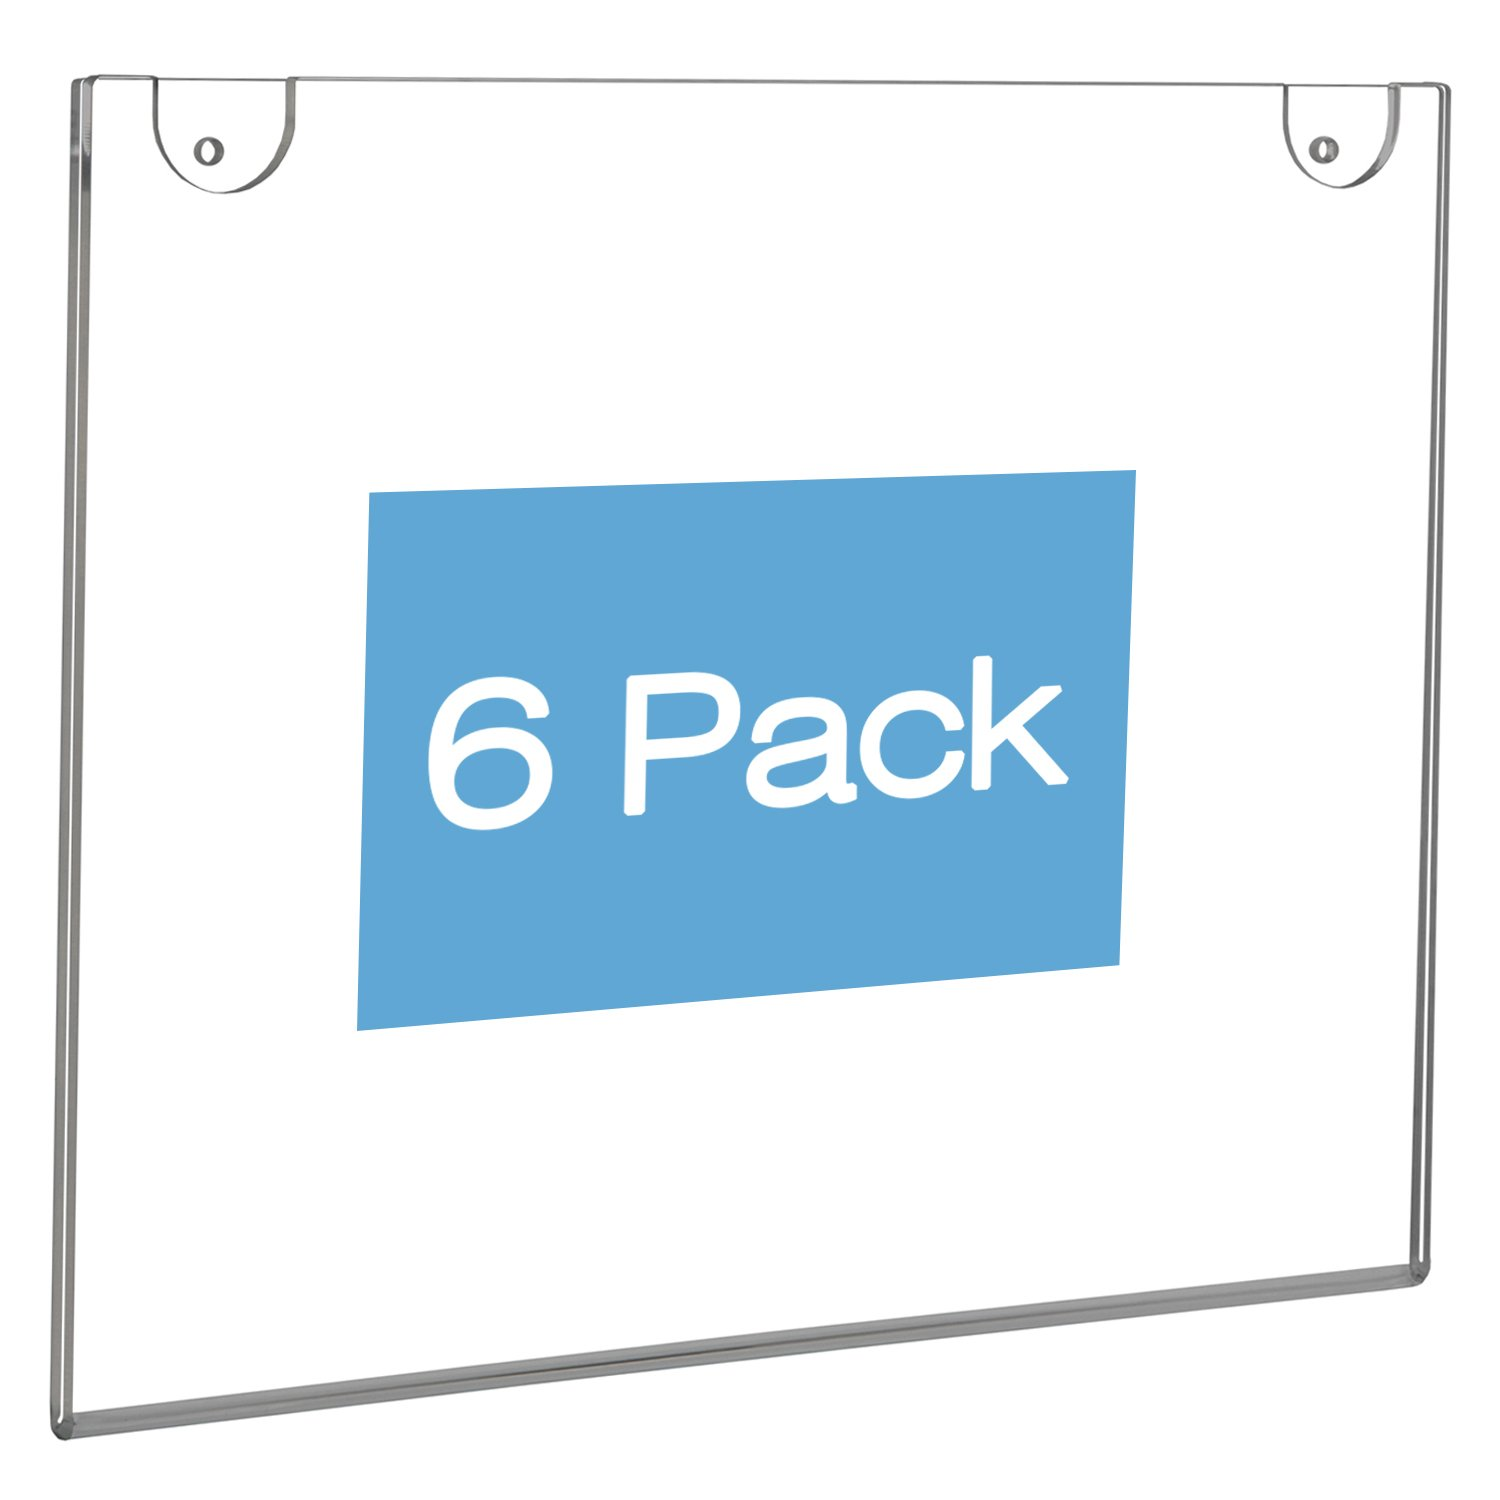 NIUBEE Wall Mount Sign Holder 11 x 8.5 Inch- Clear Acrylic Picture Frame for Paper- Horizontal(6 Pack)